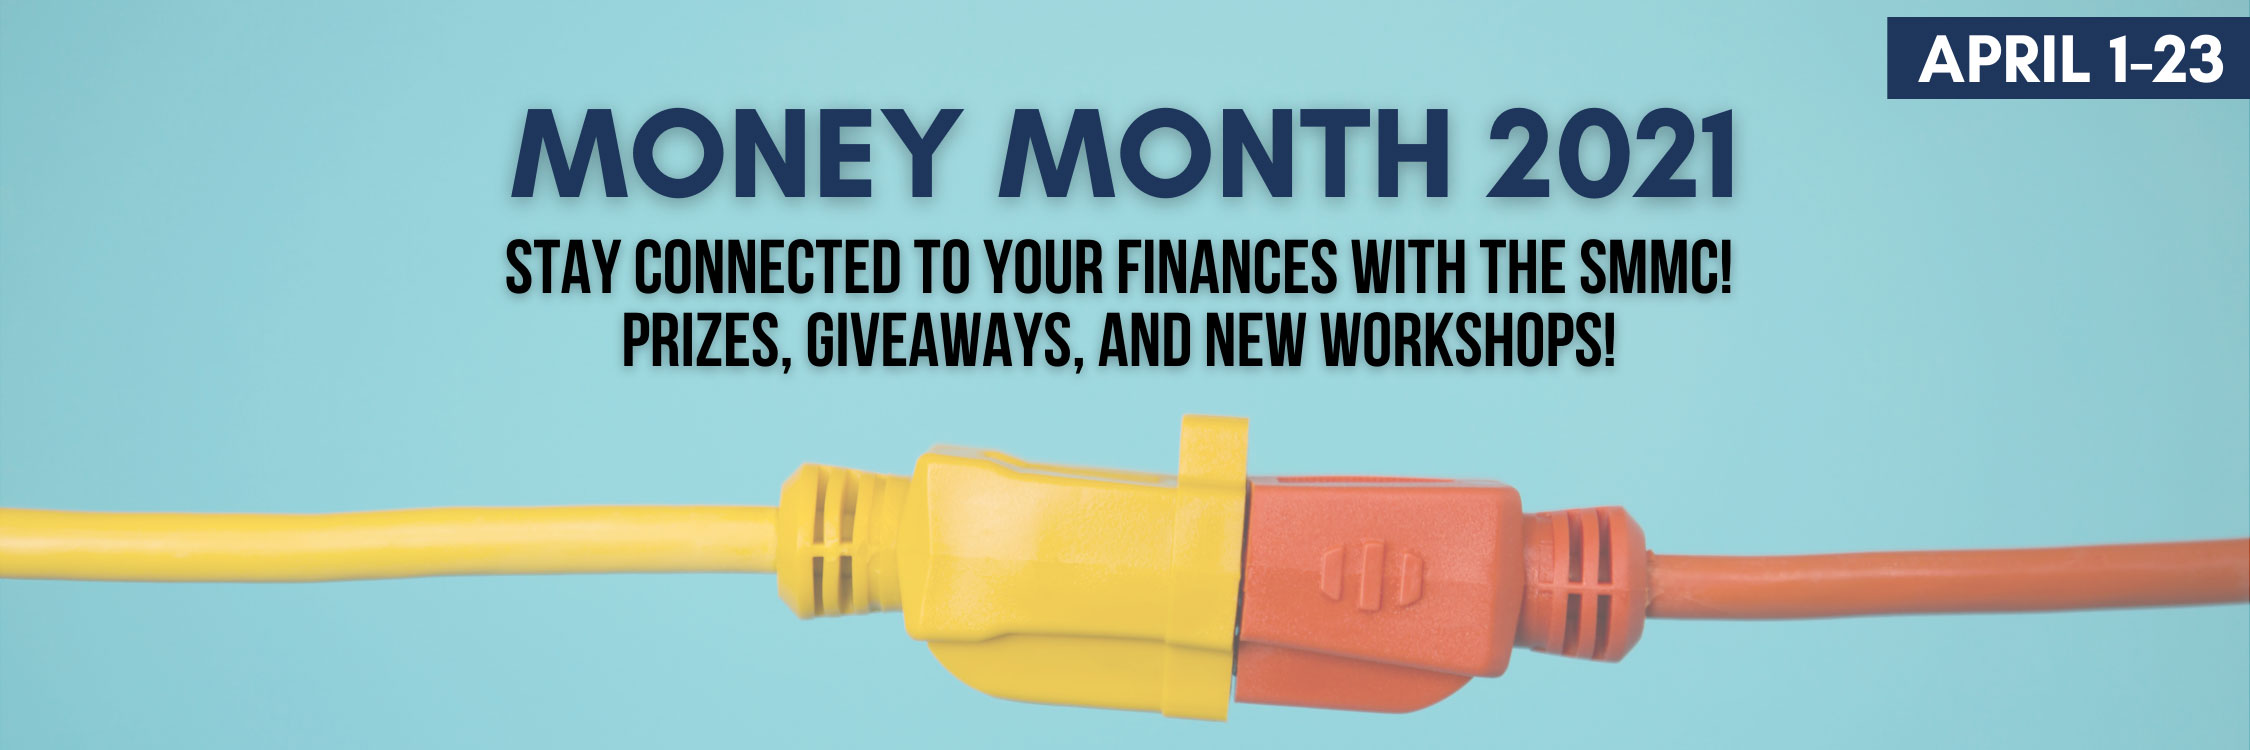 Money Month 2021 helping students stay connected to their finances